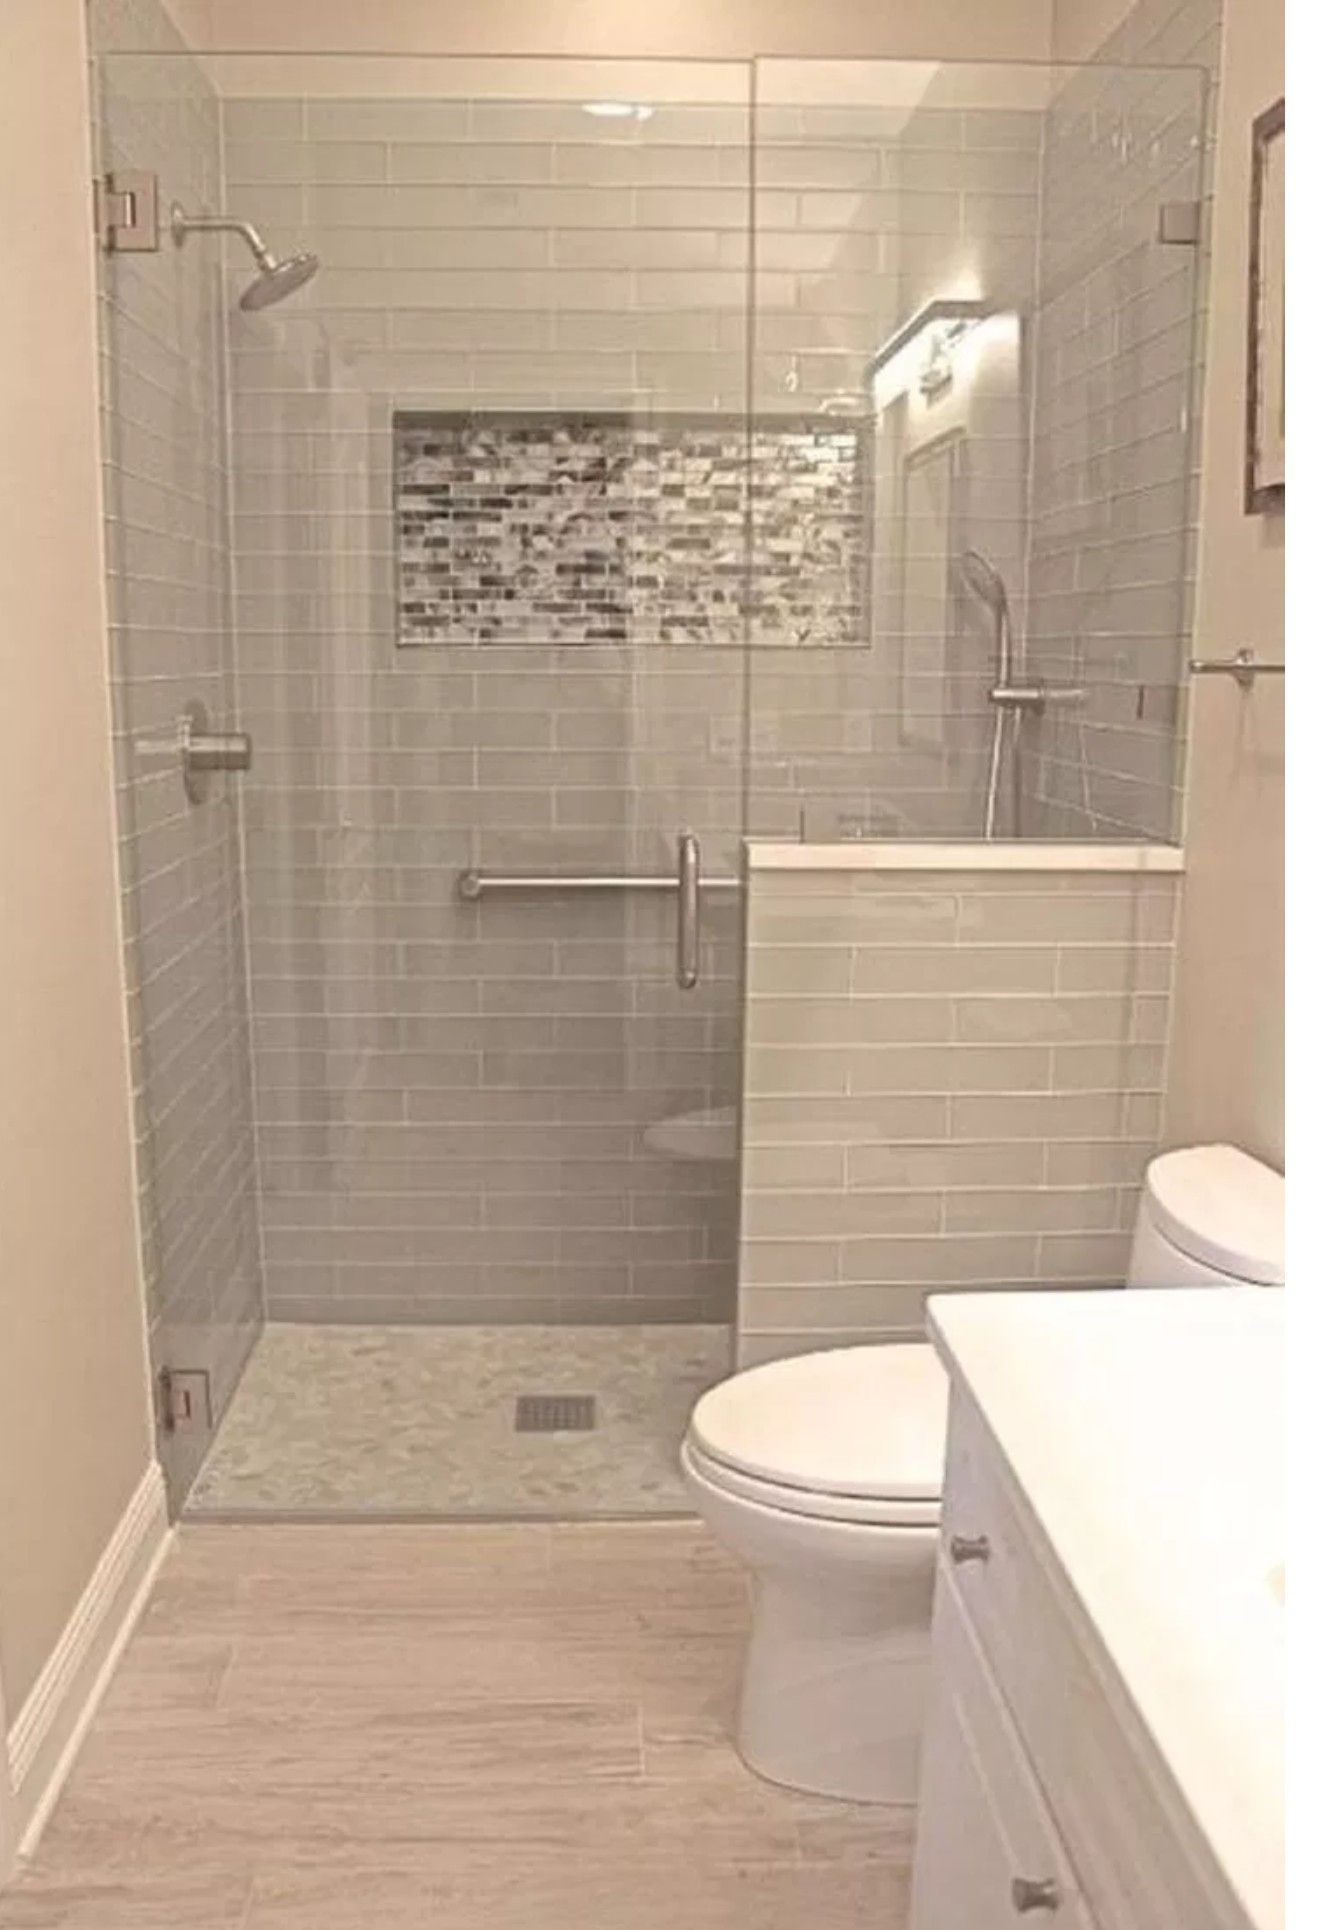 Half Wall Between Toilet And Shower Bathroom Remodel Shower Small Bathroom Bathrooms Remodel